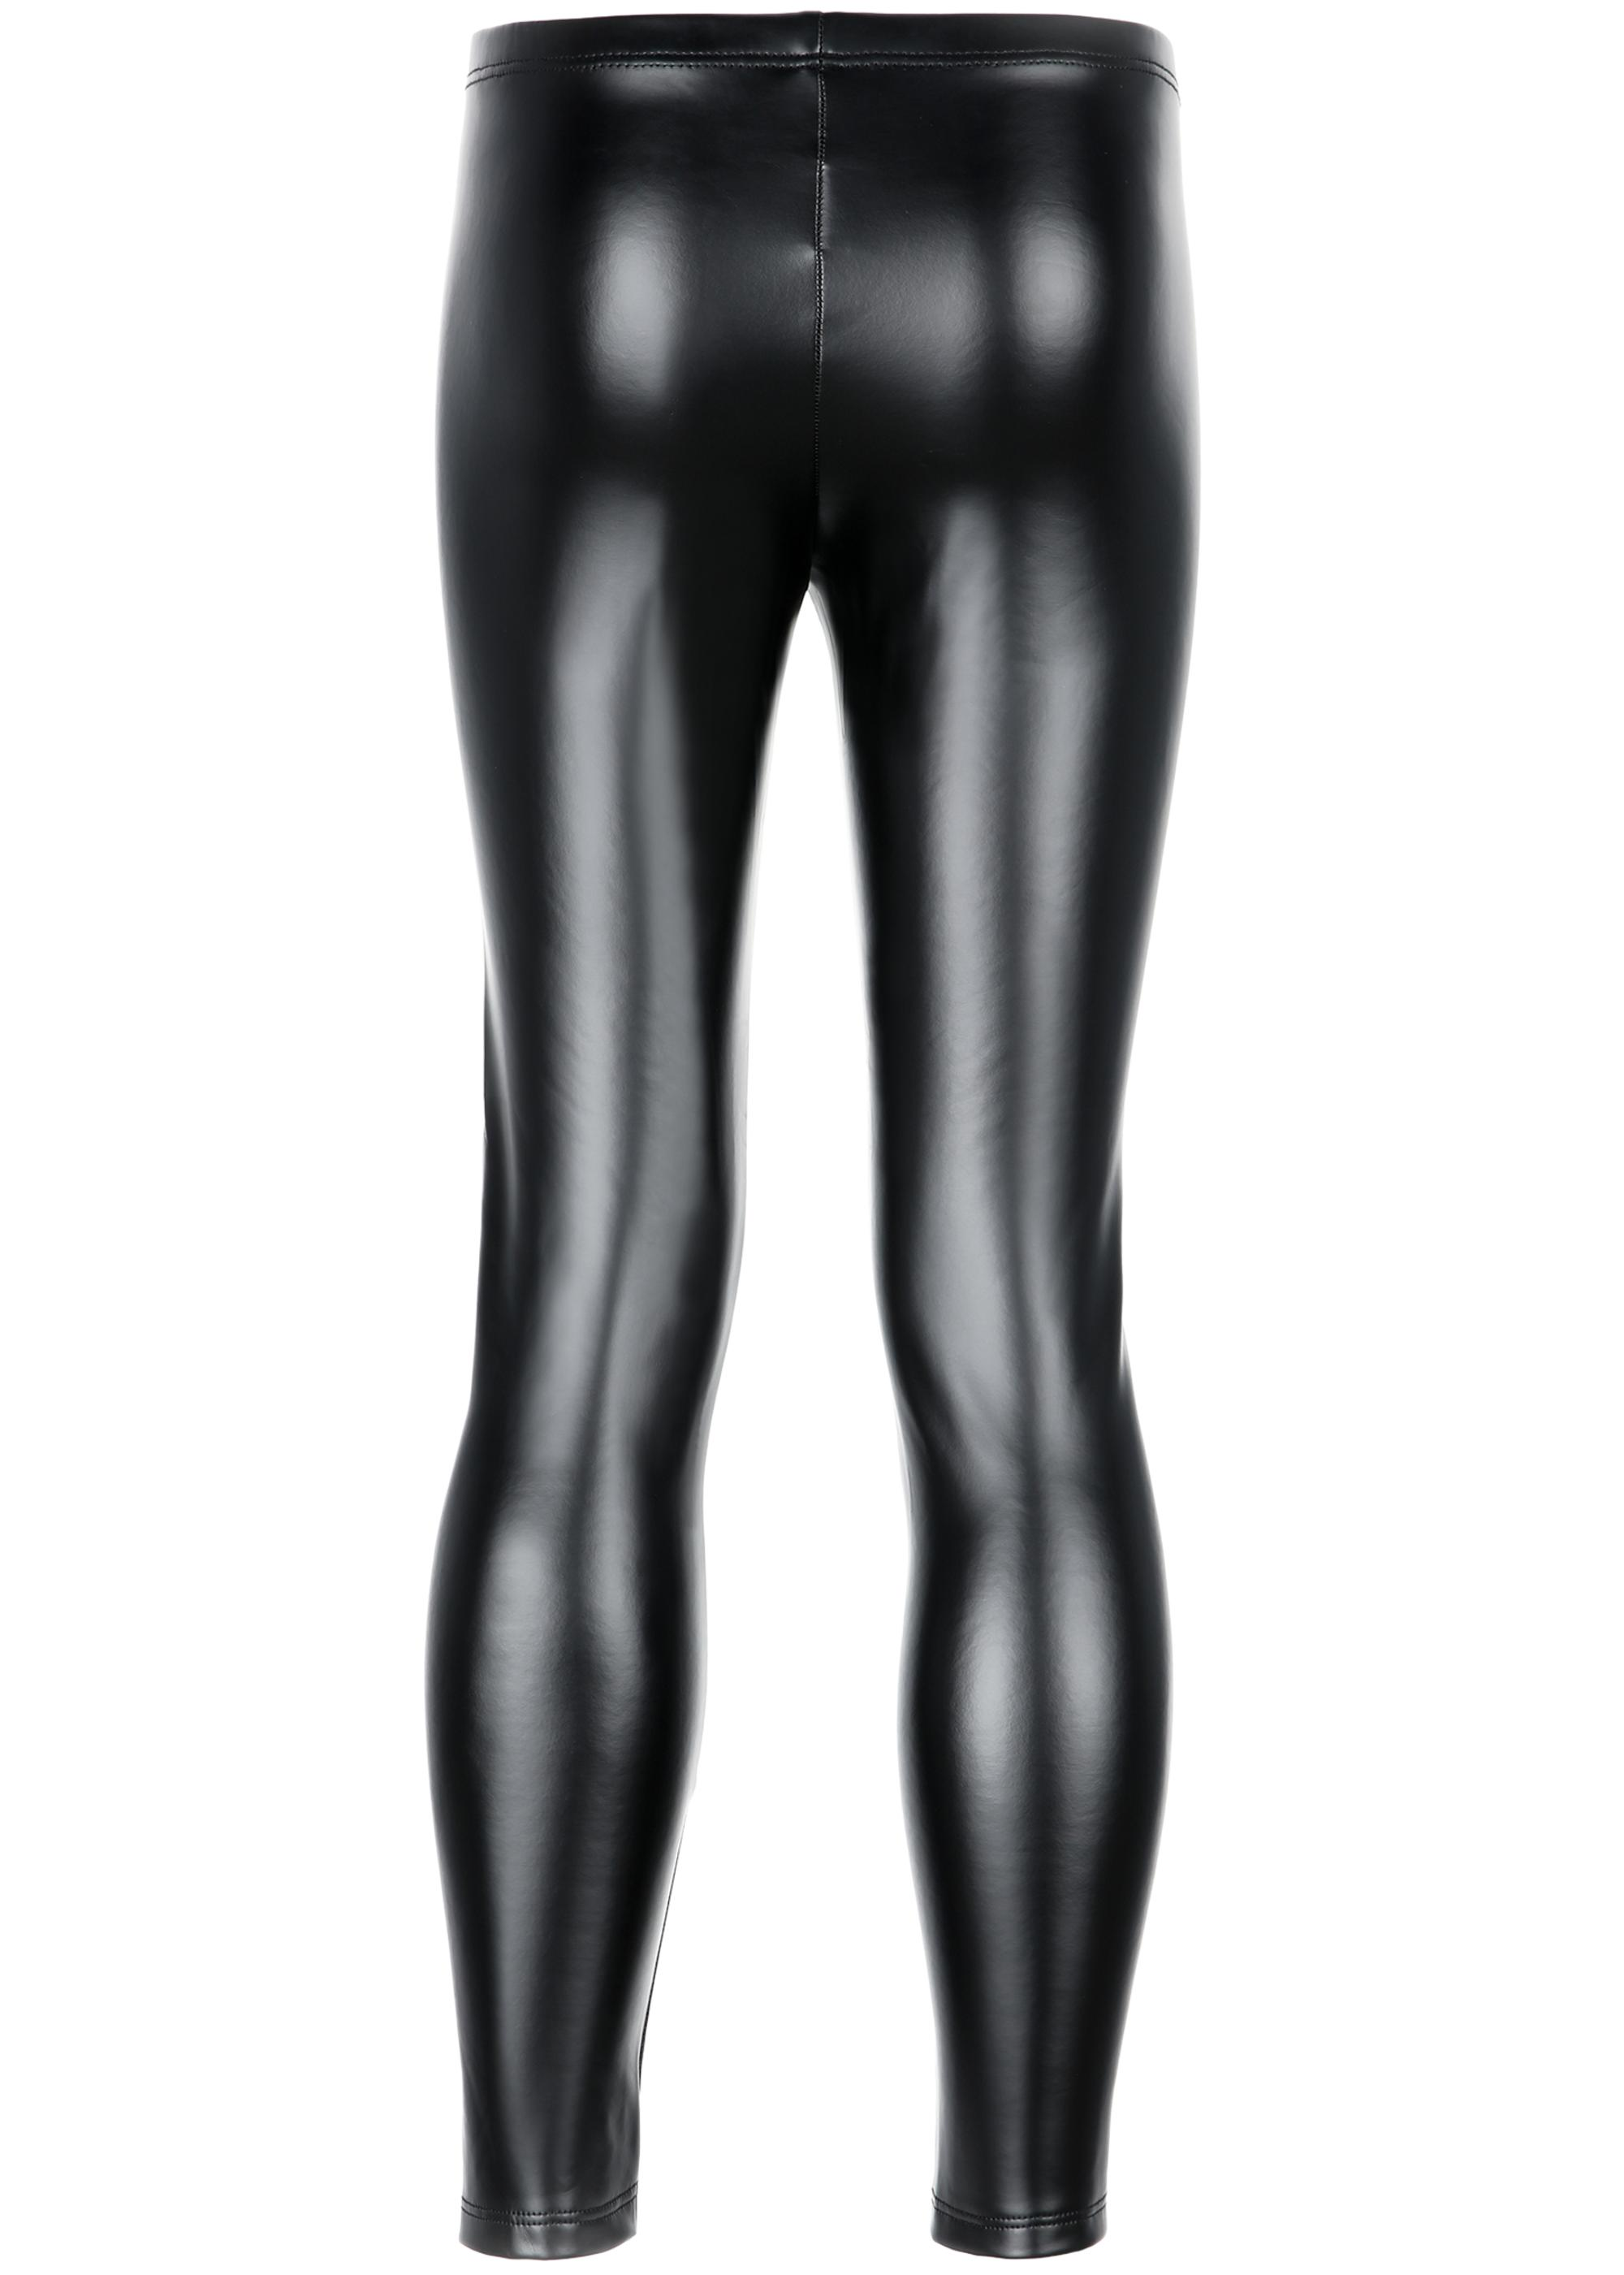 30bffd9e10a034 Girl's thermal leather-effect leggings - Calzedonia